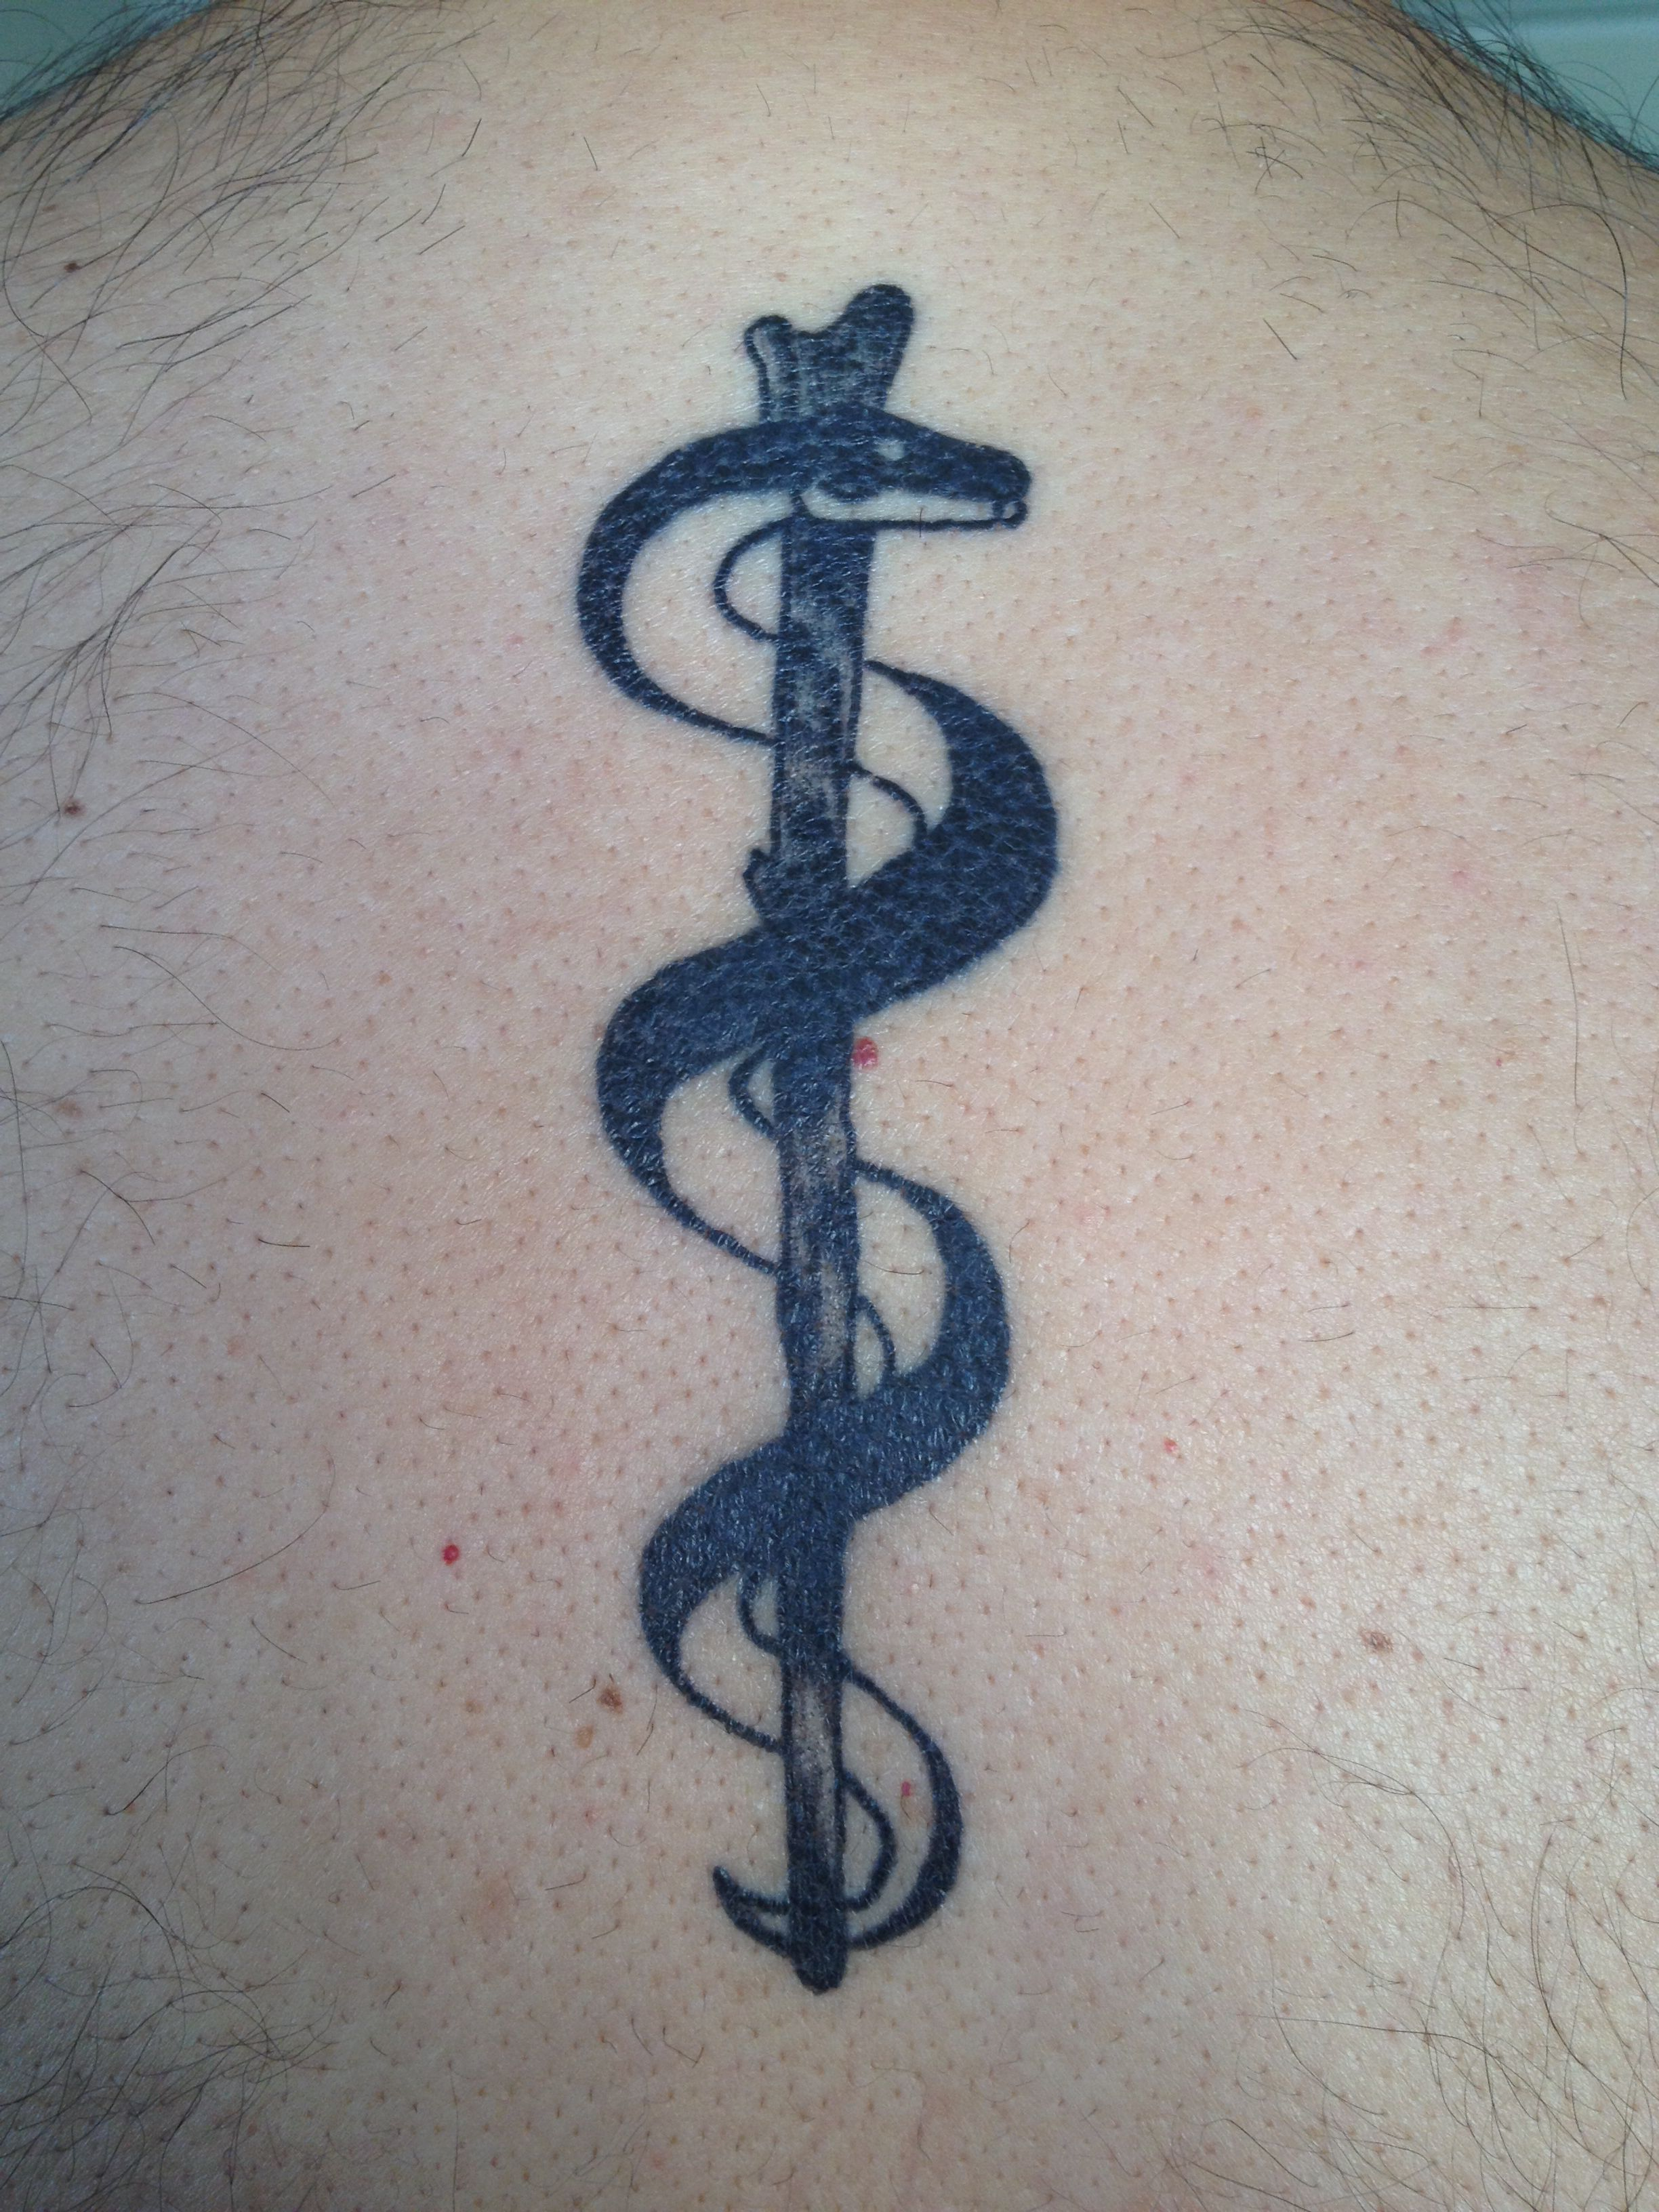 Rod Of Asclepius Tattoo In My Upperback My Husbands First Tattoo